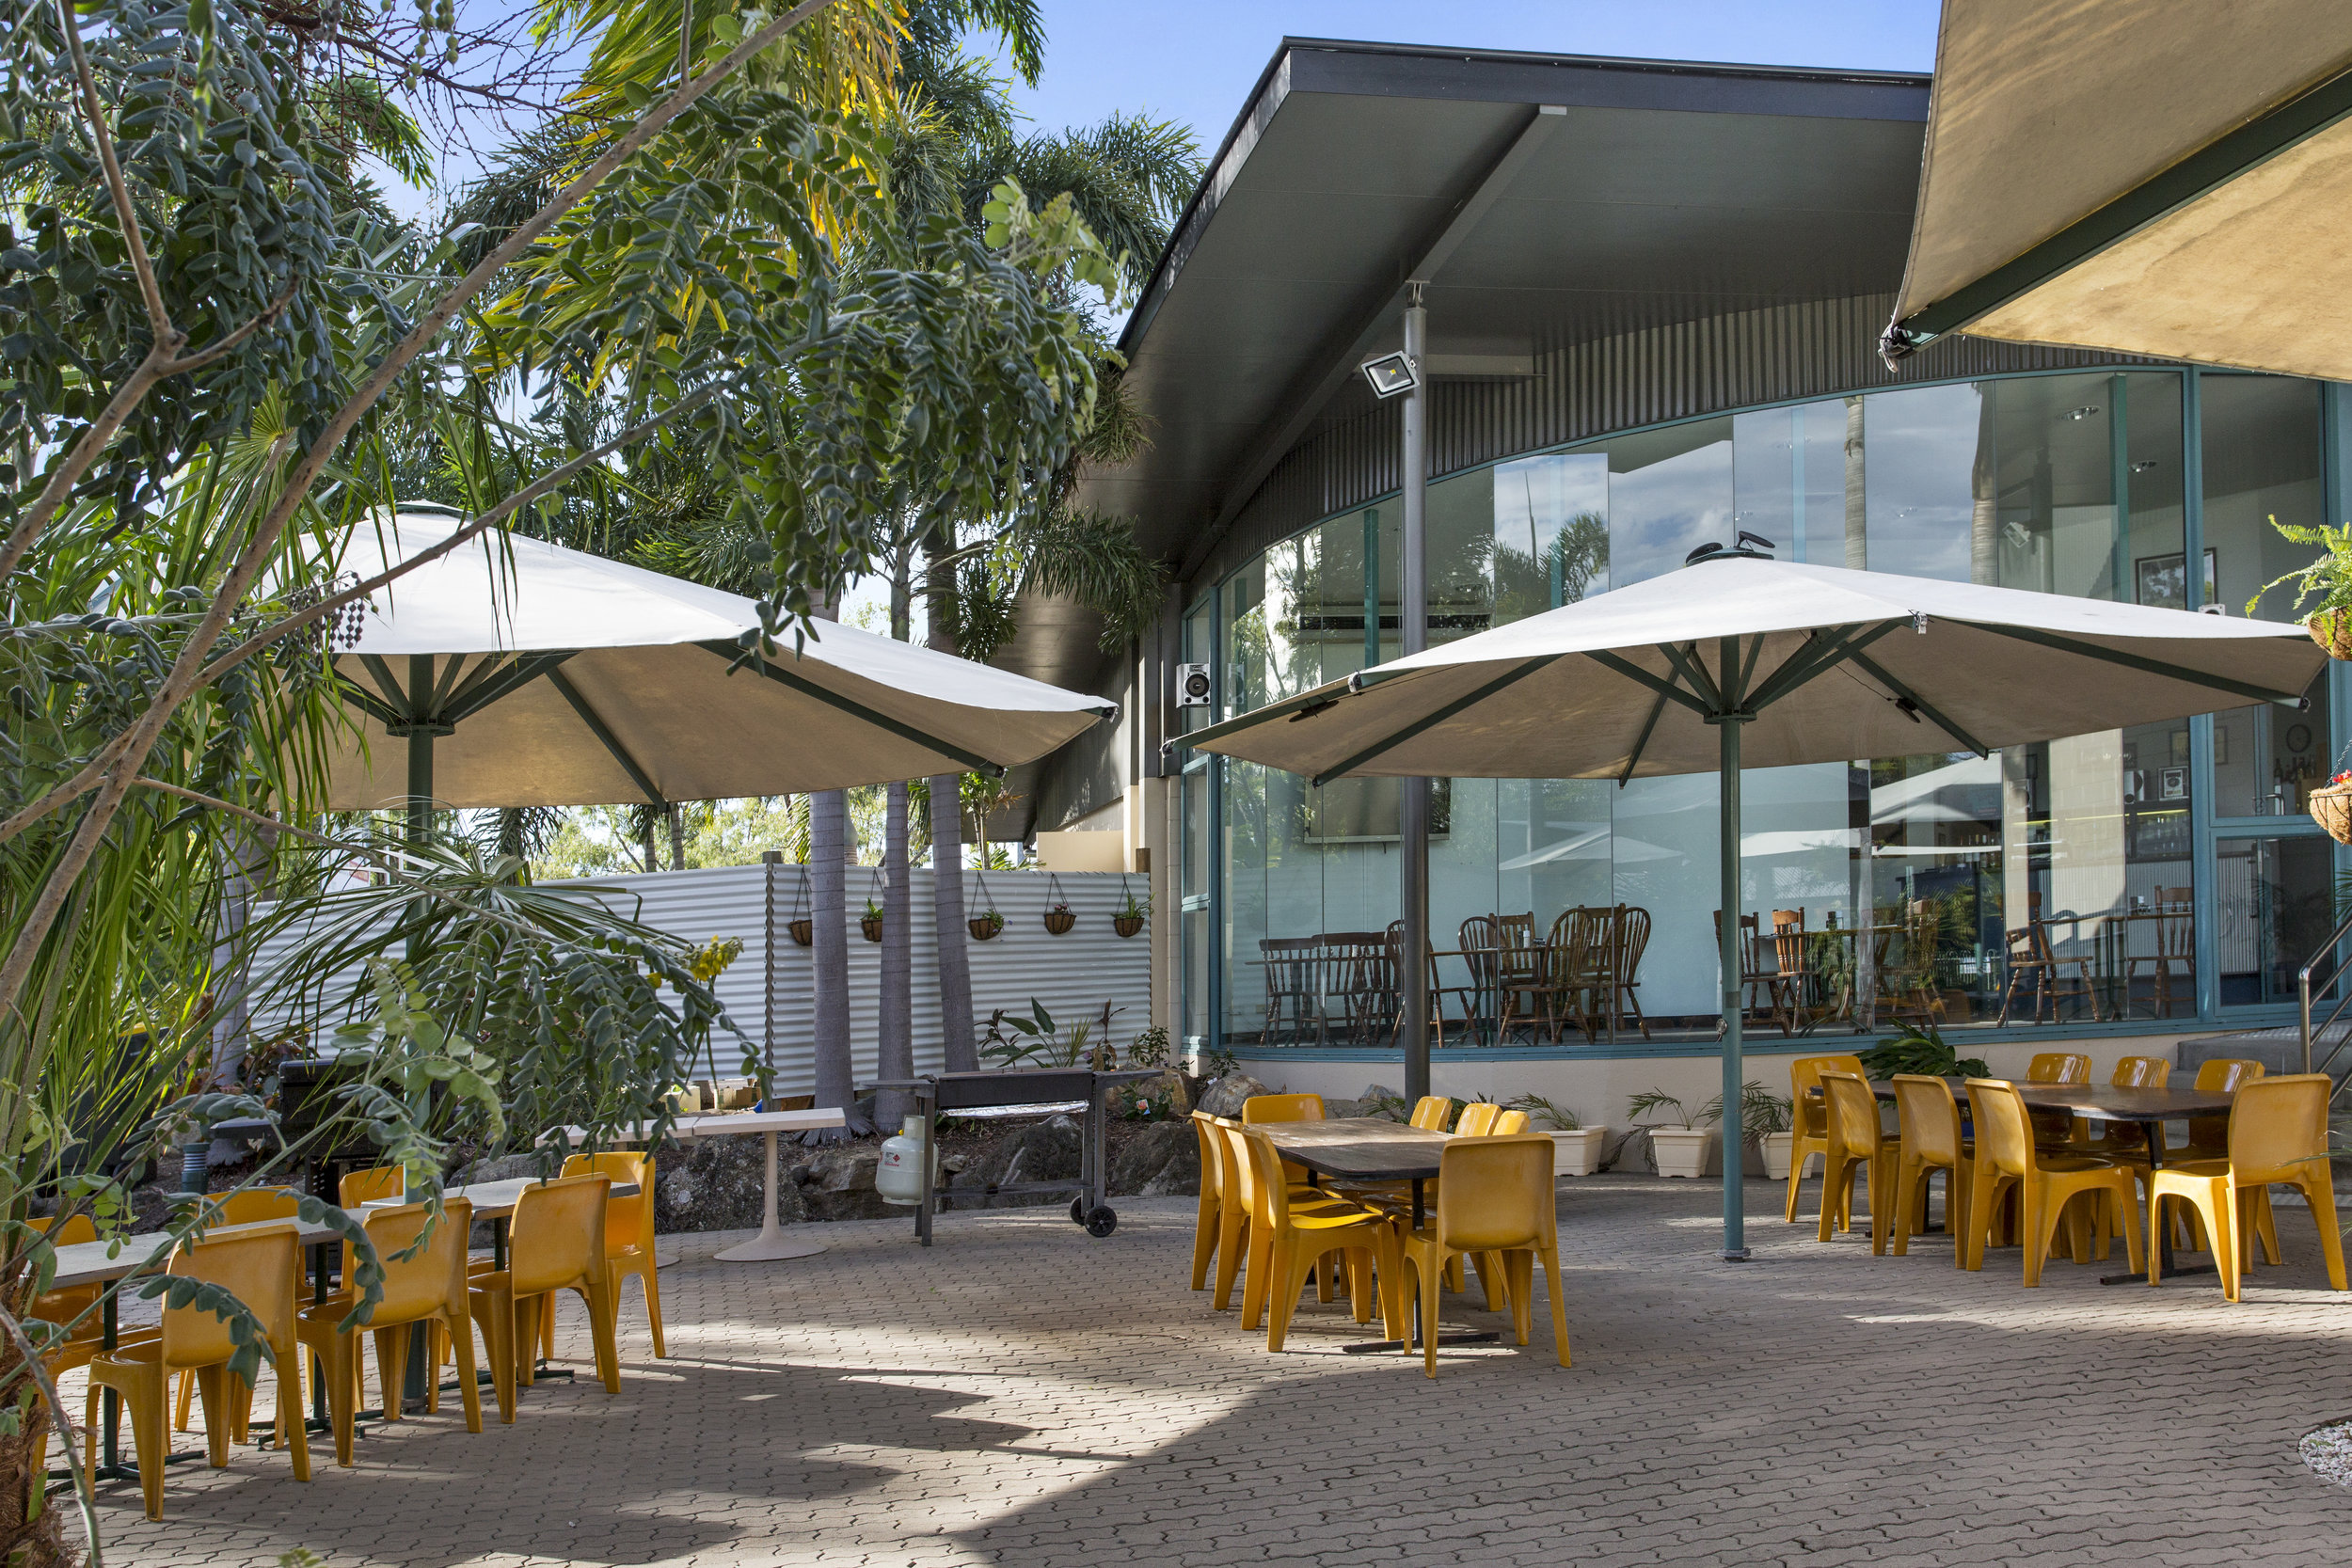 Restaurant & Bar - The Capricorn Motel restaurant is a perfect place to dine at the end of the day.